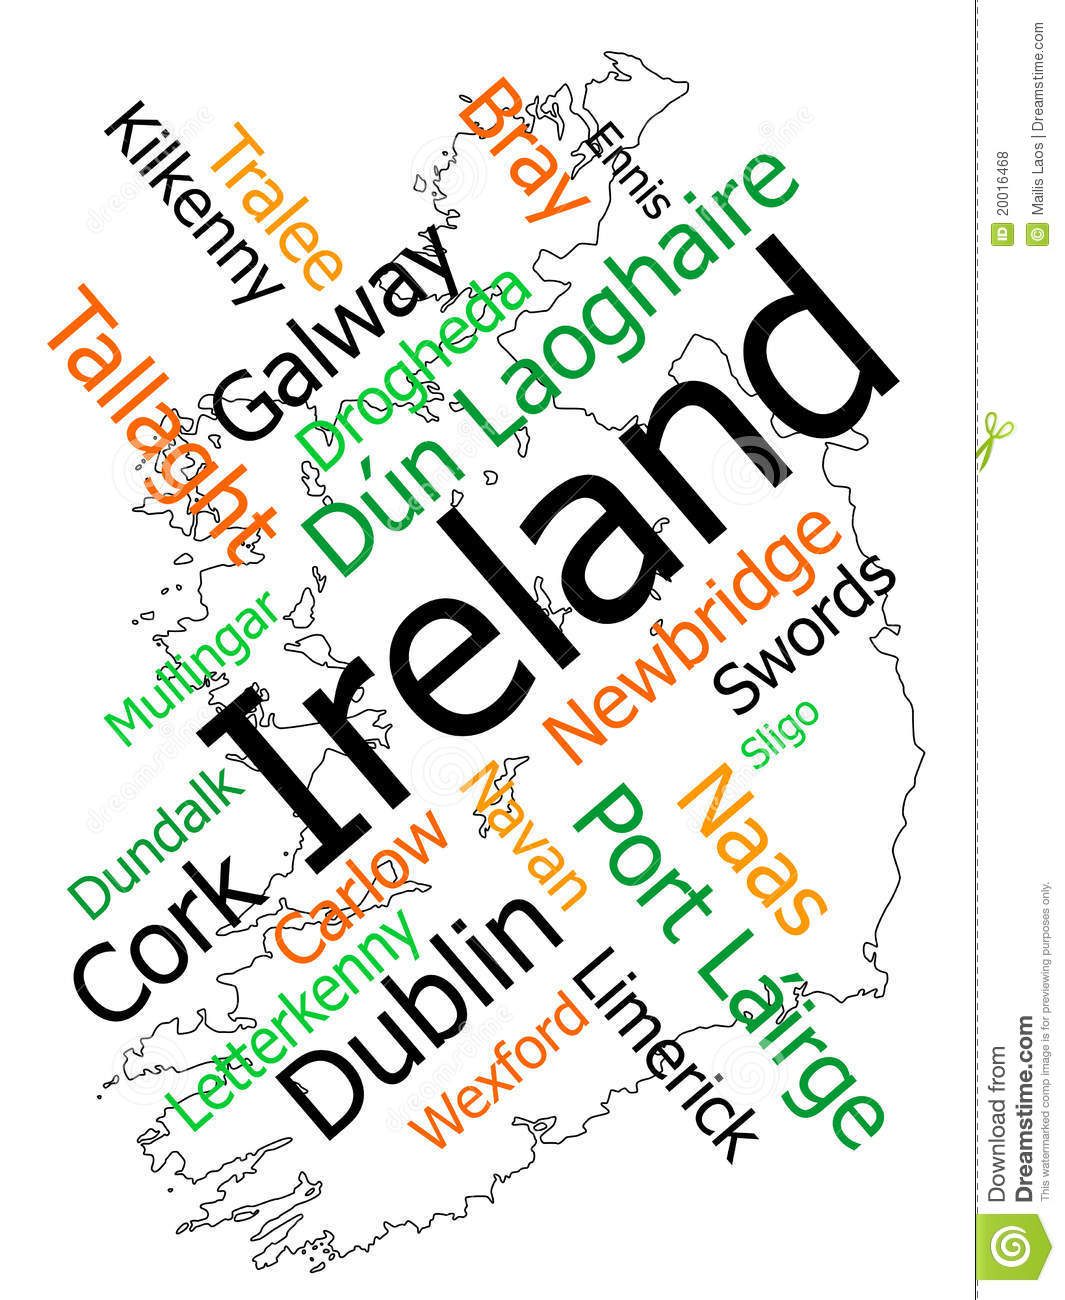 Cities In Ireland Map.Ireland Map And Cities Stock Vector Illustration Of Politics 20016468